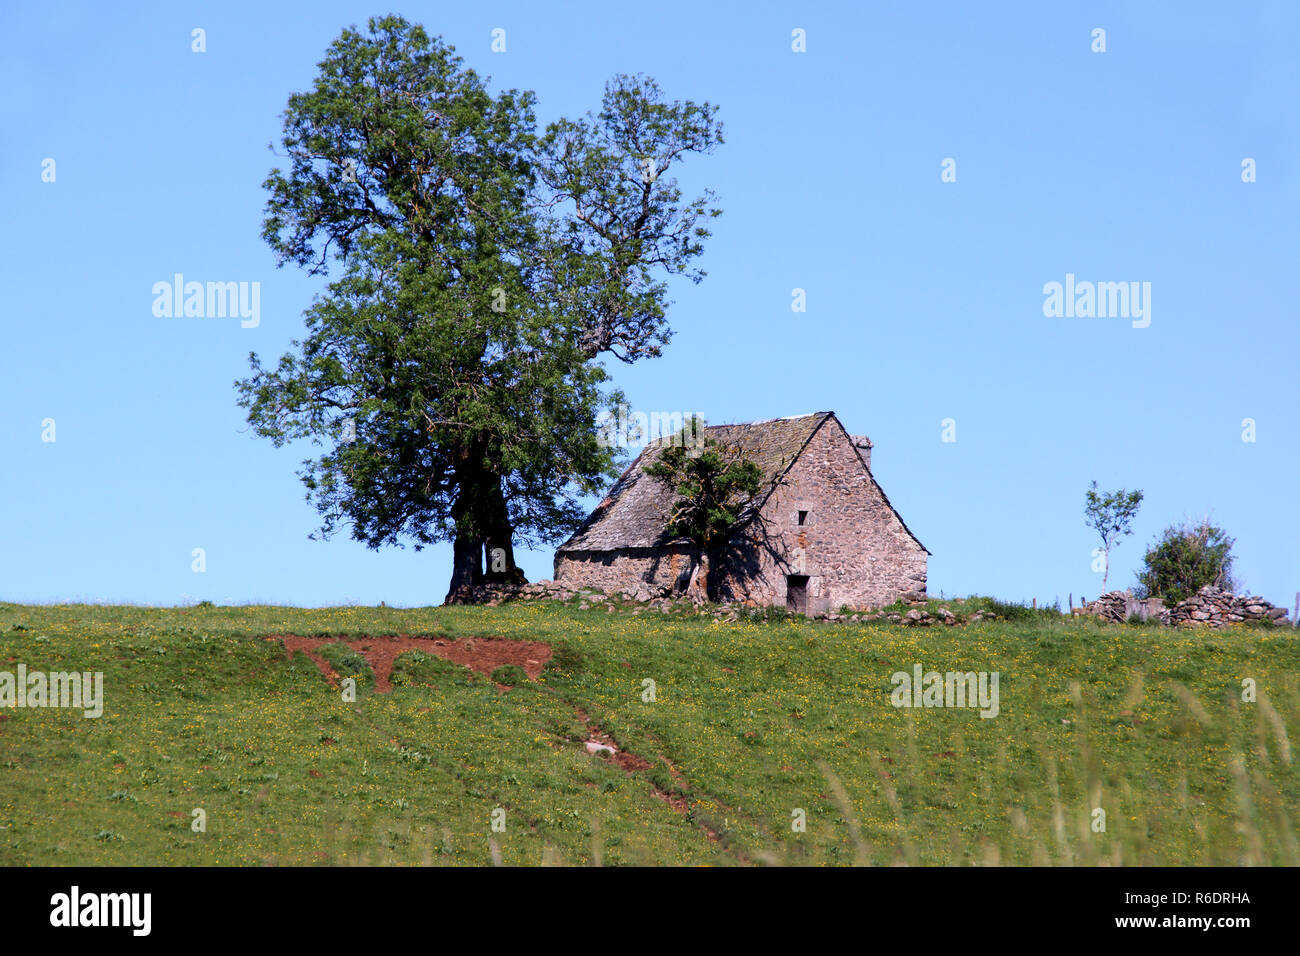 France.Dept 12. Aveyron. Countryside, with traditional barn, near town of Rodez. Stock Photo